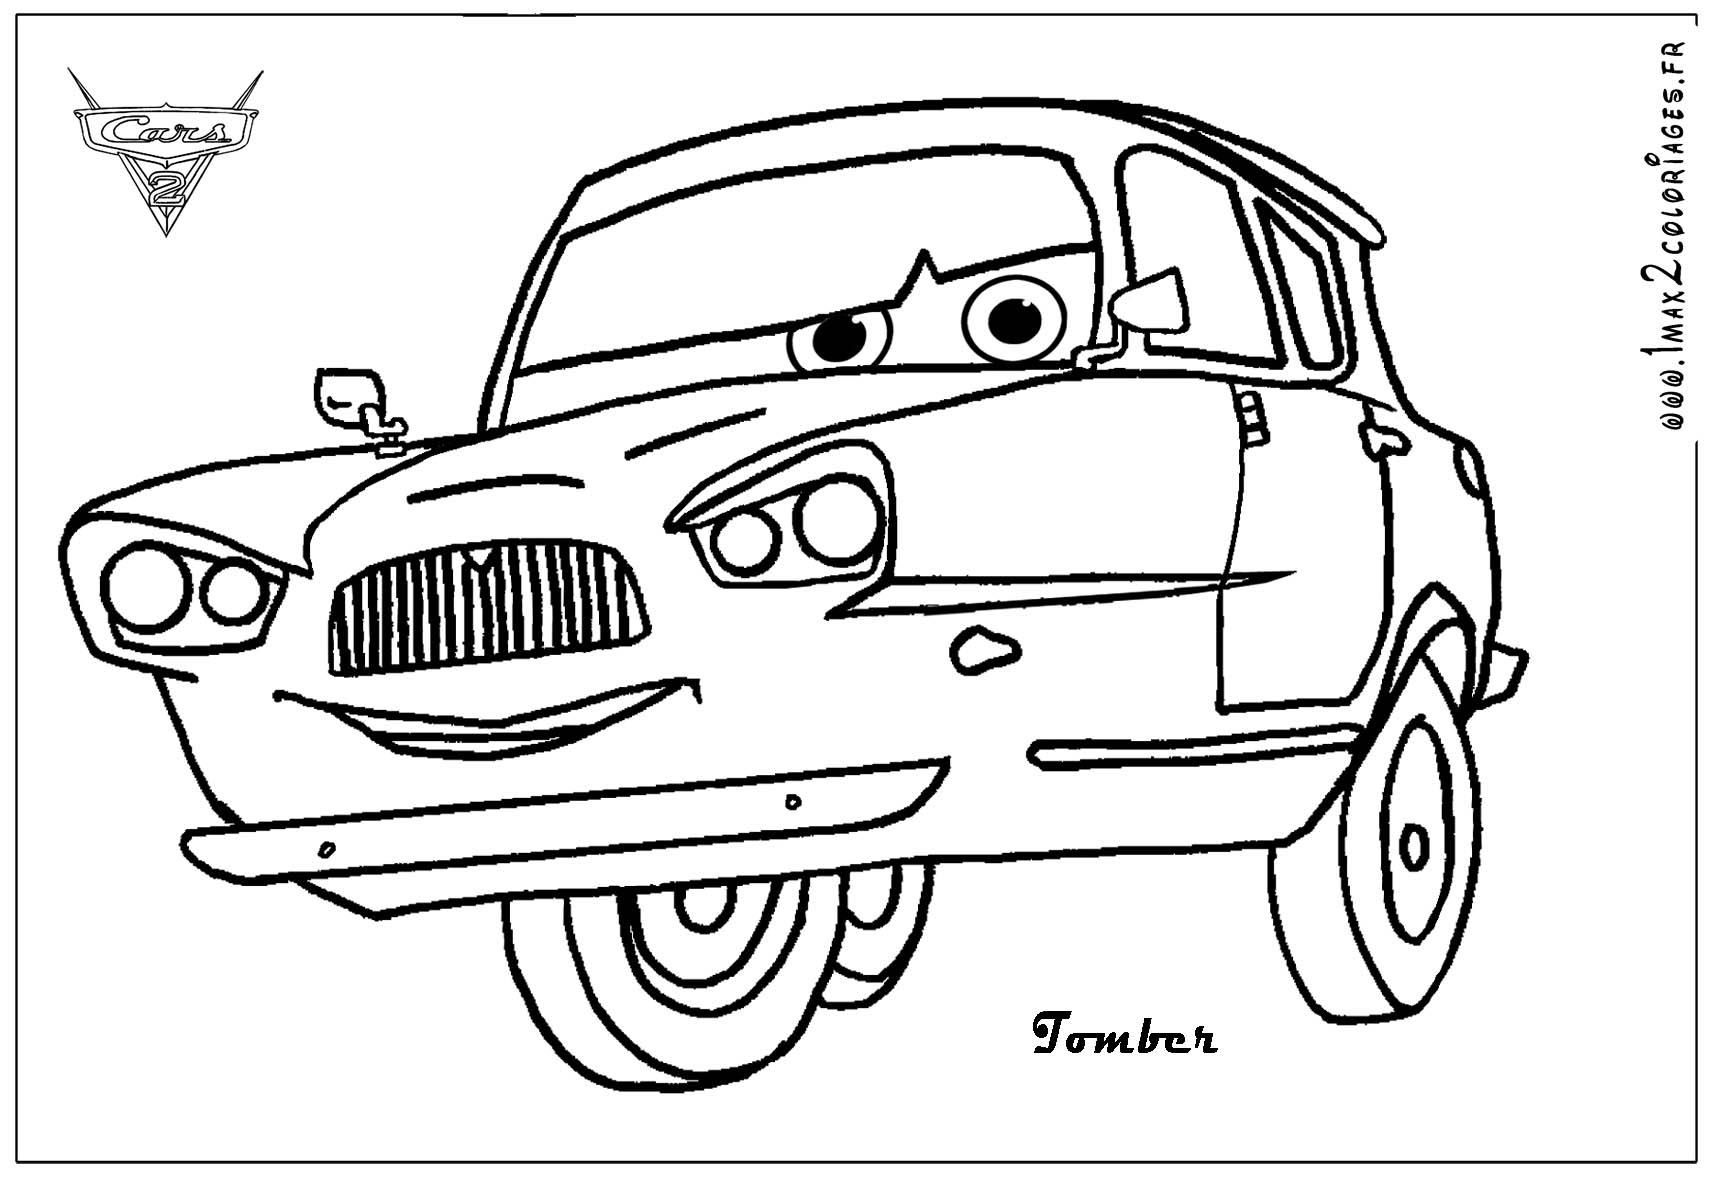 Co co coloring pics of cars